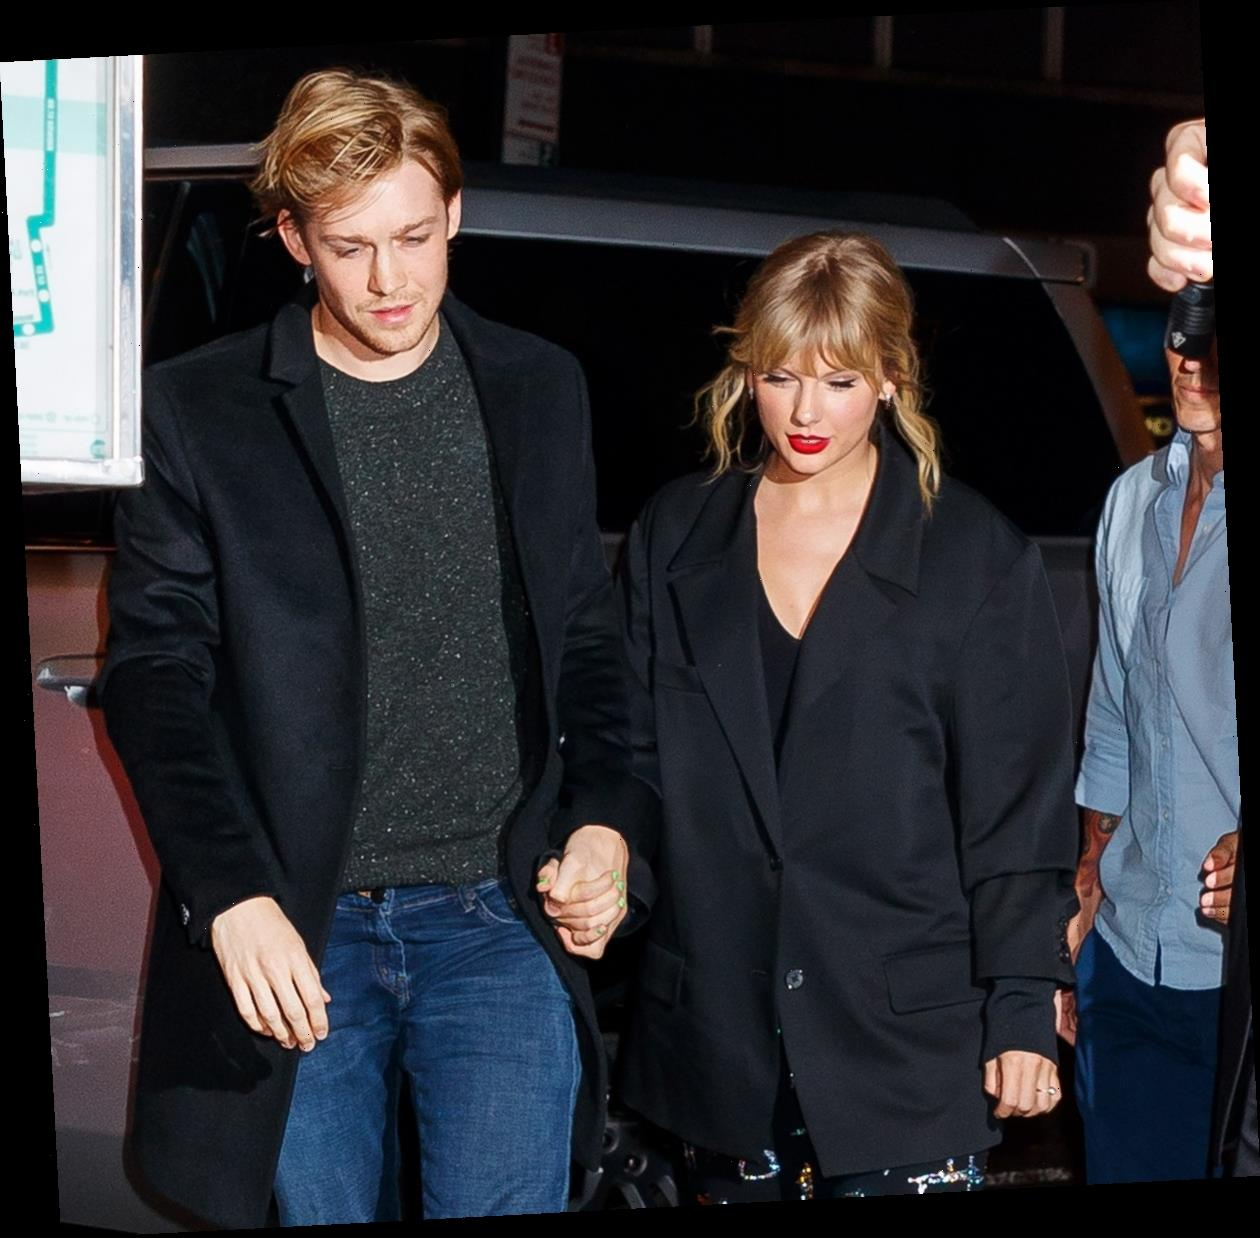 Joe Alwyn Doesn't Mind Being Taylor Swift's Muse, Despite Their Private Relationship